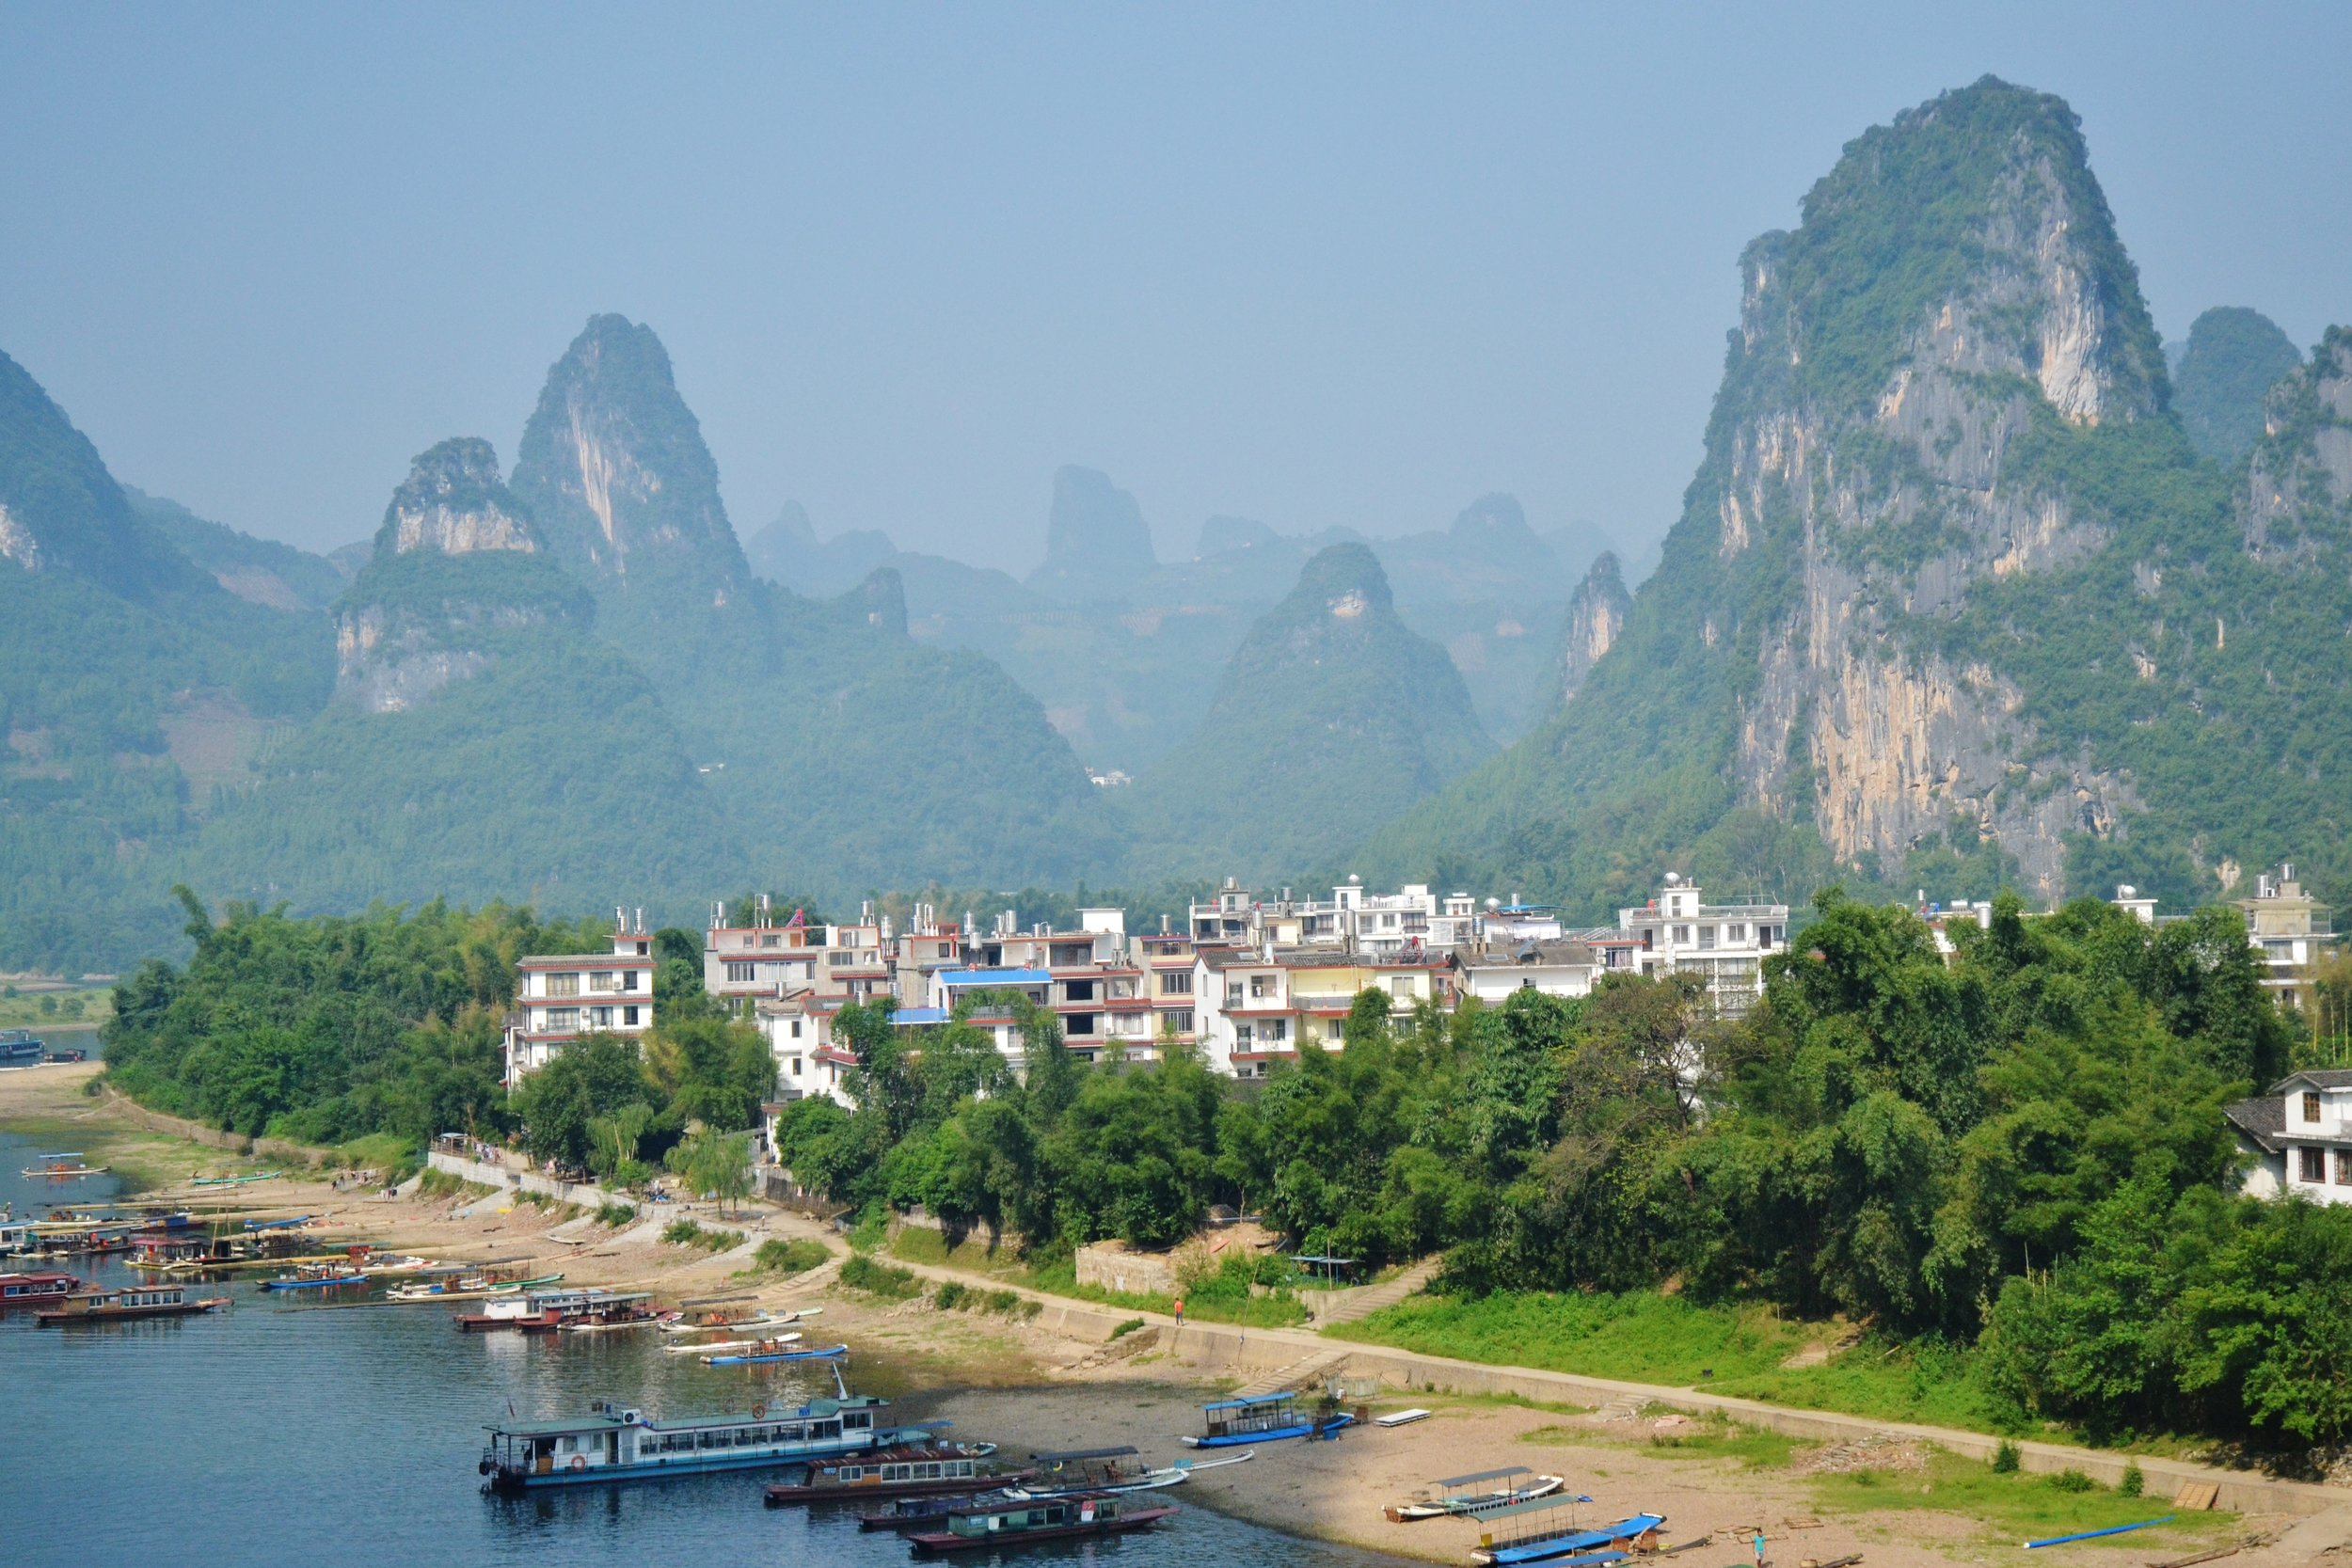 Amazing view in Yangshuo